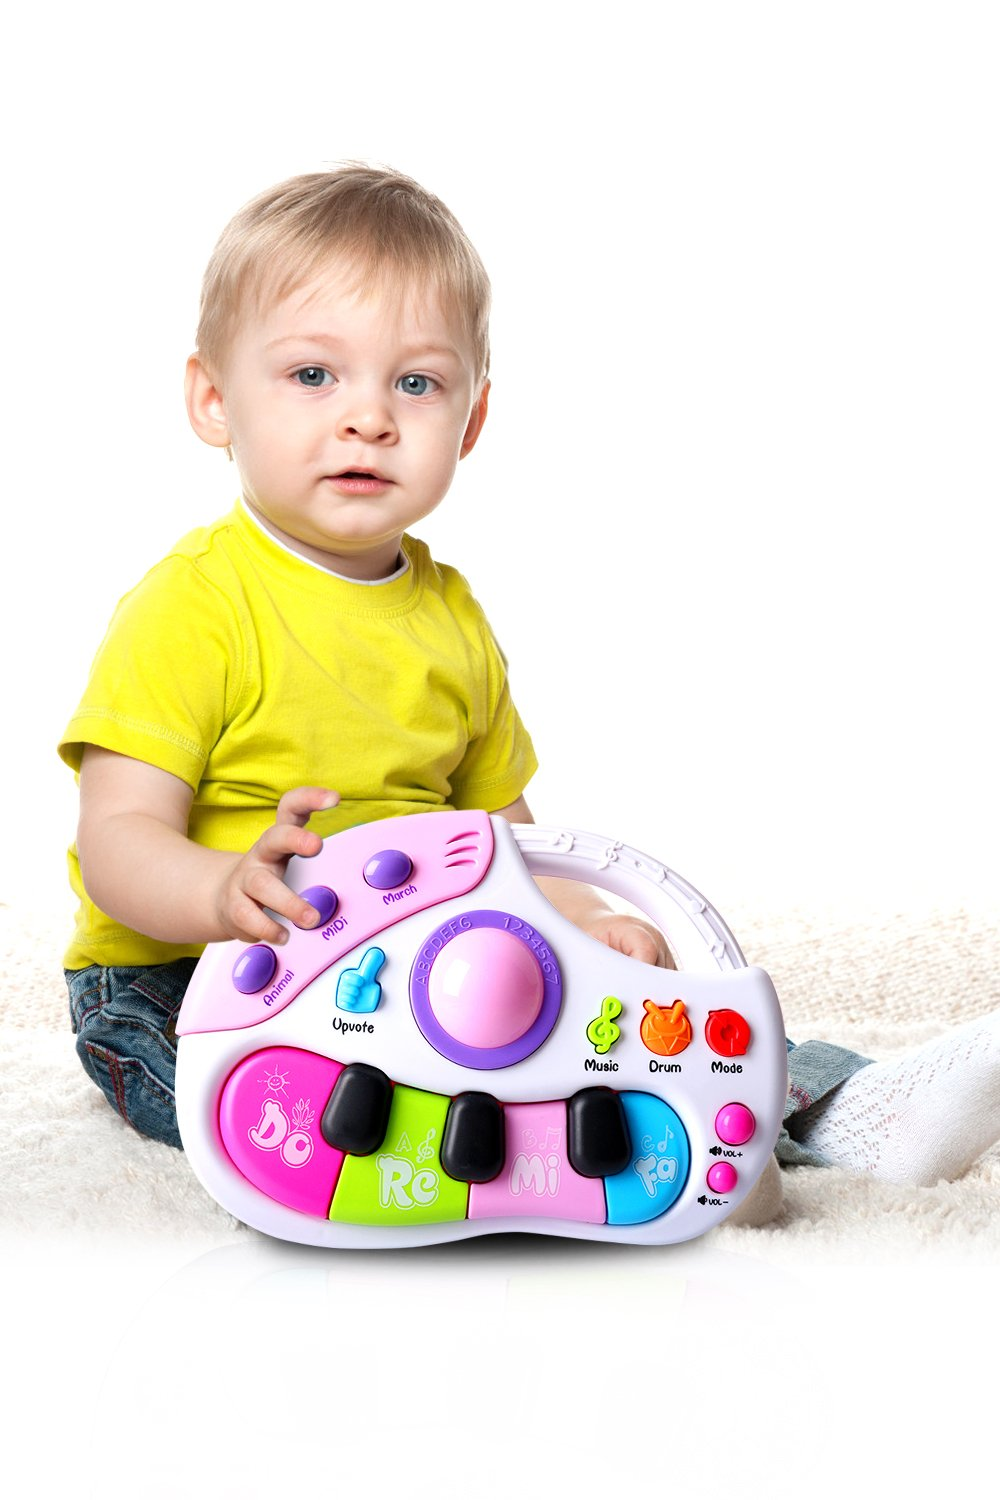 Musical Toys, Baby Keyboard Piano with Microphone Drums Music Electronic Learning Educational Toy for Kids Baby Toddler for 6 Months Up Gifts for Toddler Girl Boys